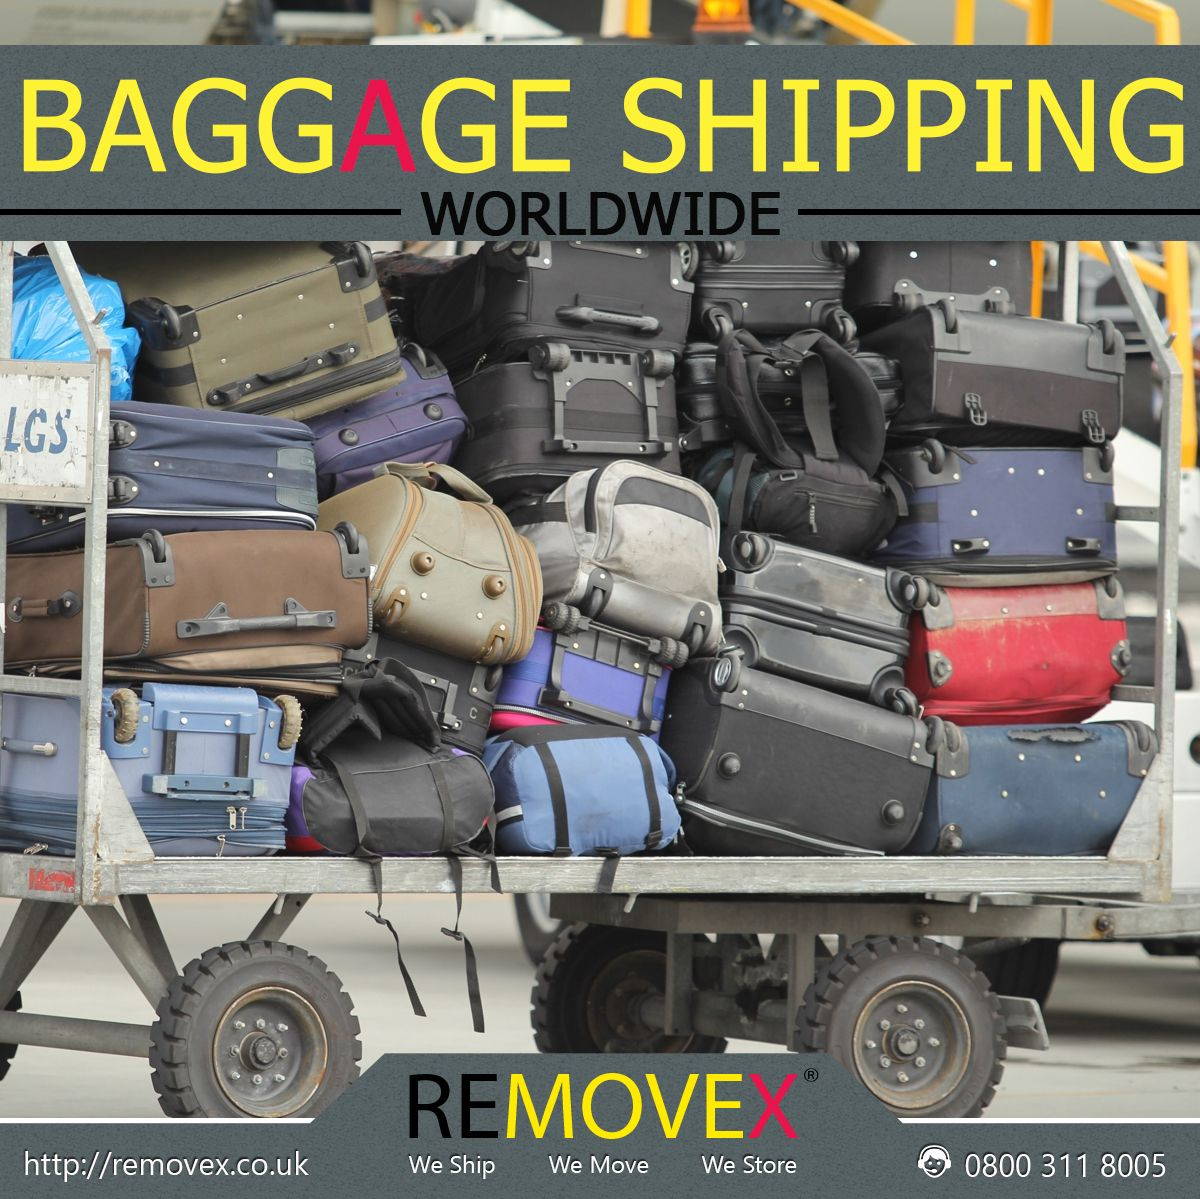 Removex offers Worldwide Baggage Shipping, receive your